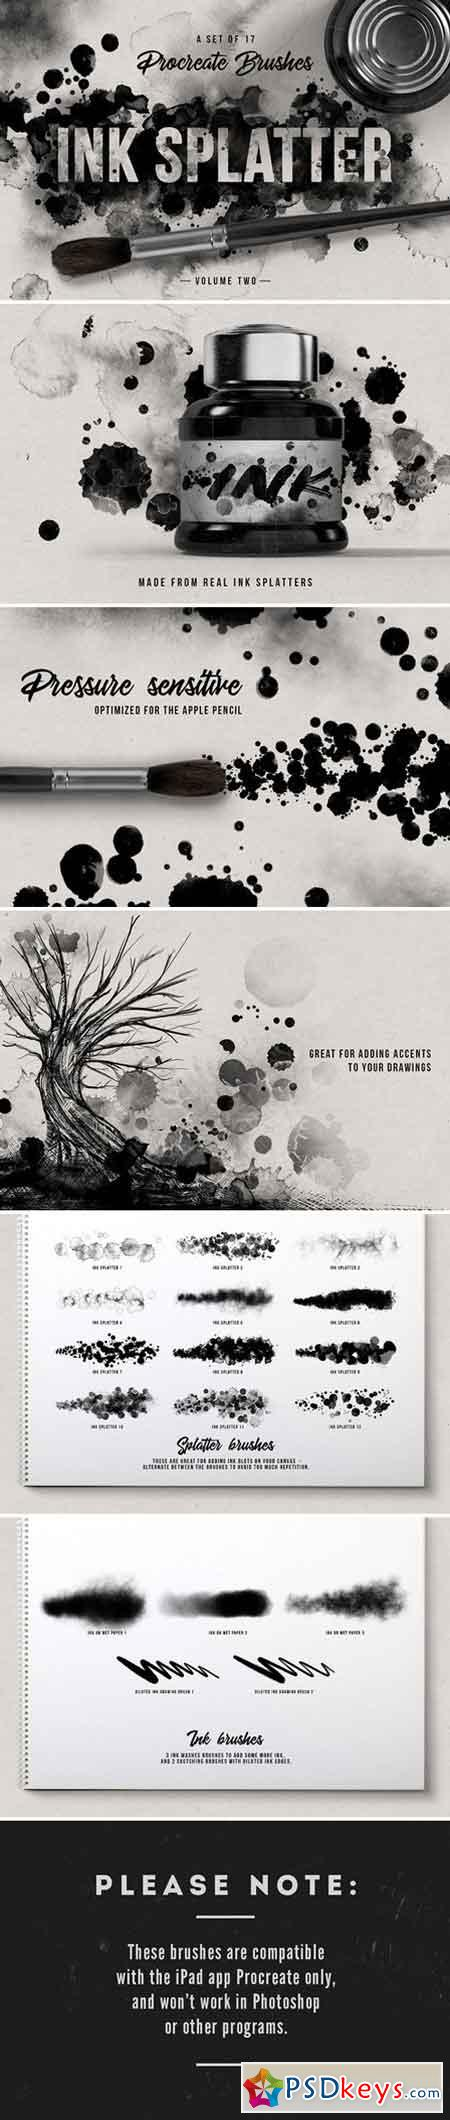 Ink splatter Procreate brushes vol 2 2184952